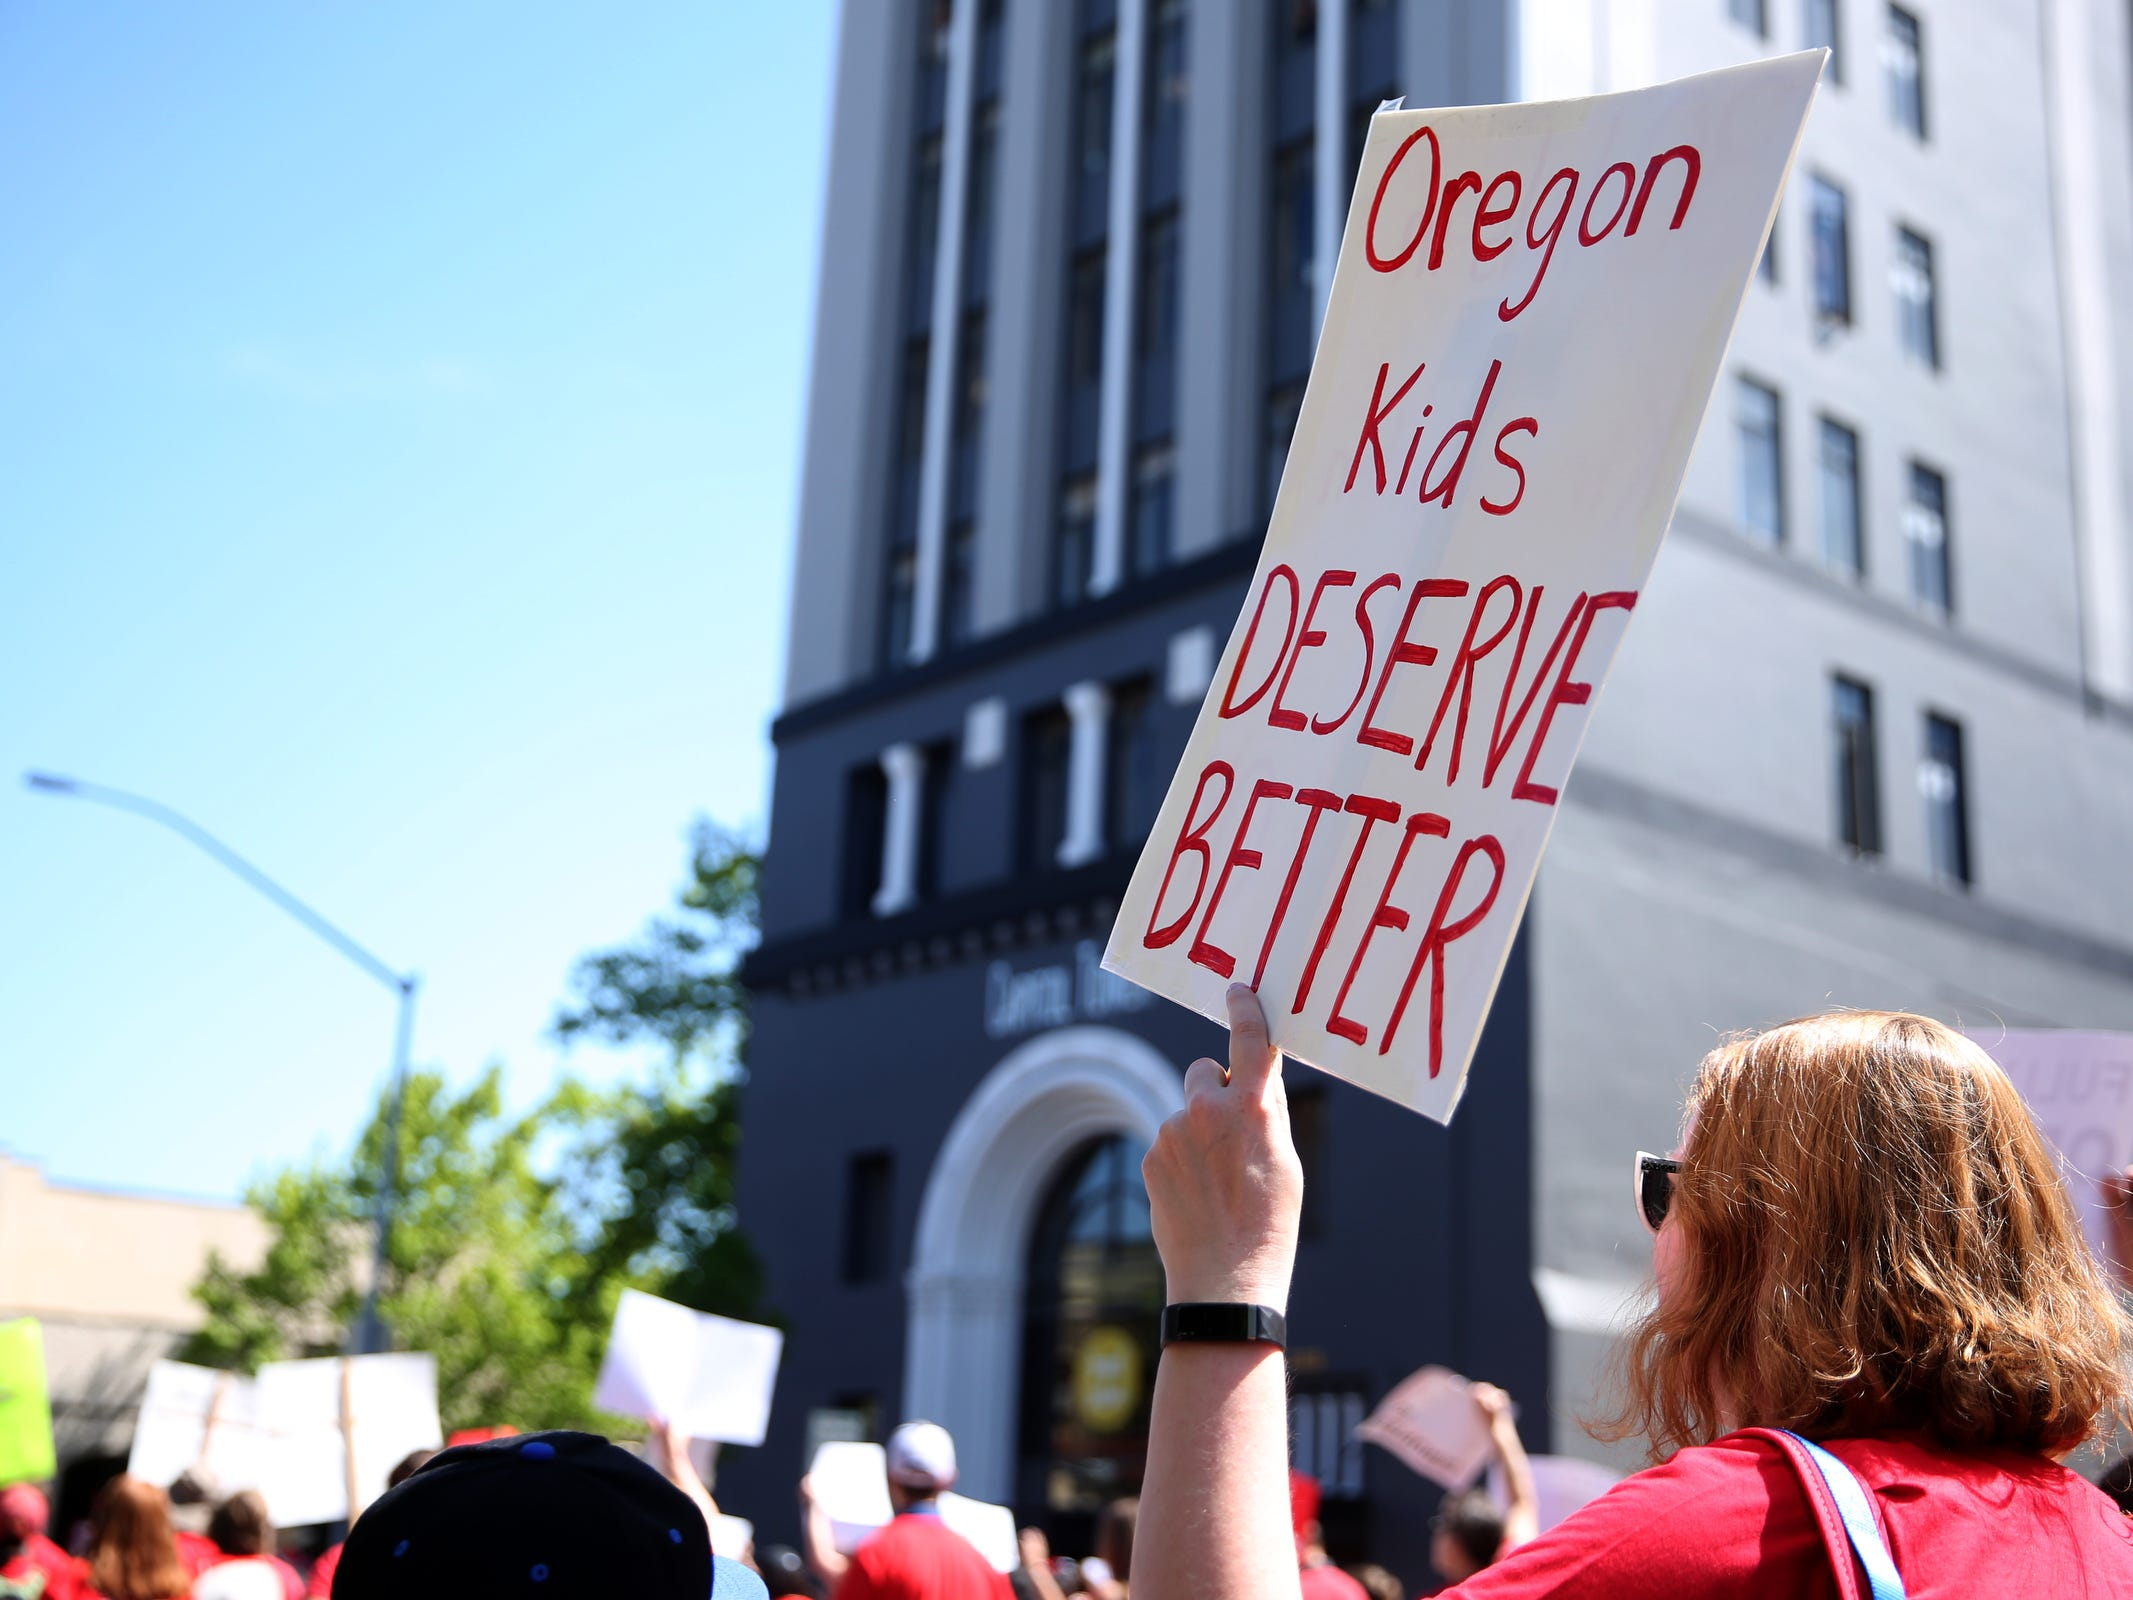 Thousands of teachers and education activists march from Riverfront Park to the Oregon State Capitol for a day of action in Salem on May 8, 2019. Schools across Oregon closed early or were closed for the day as teachers walked out to demand more school funding to address large class sizes, low graduation rates and other concerns.